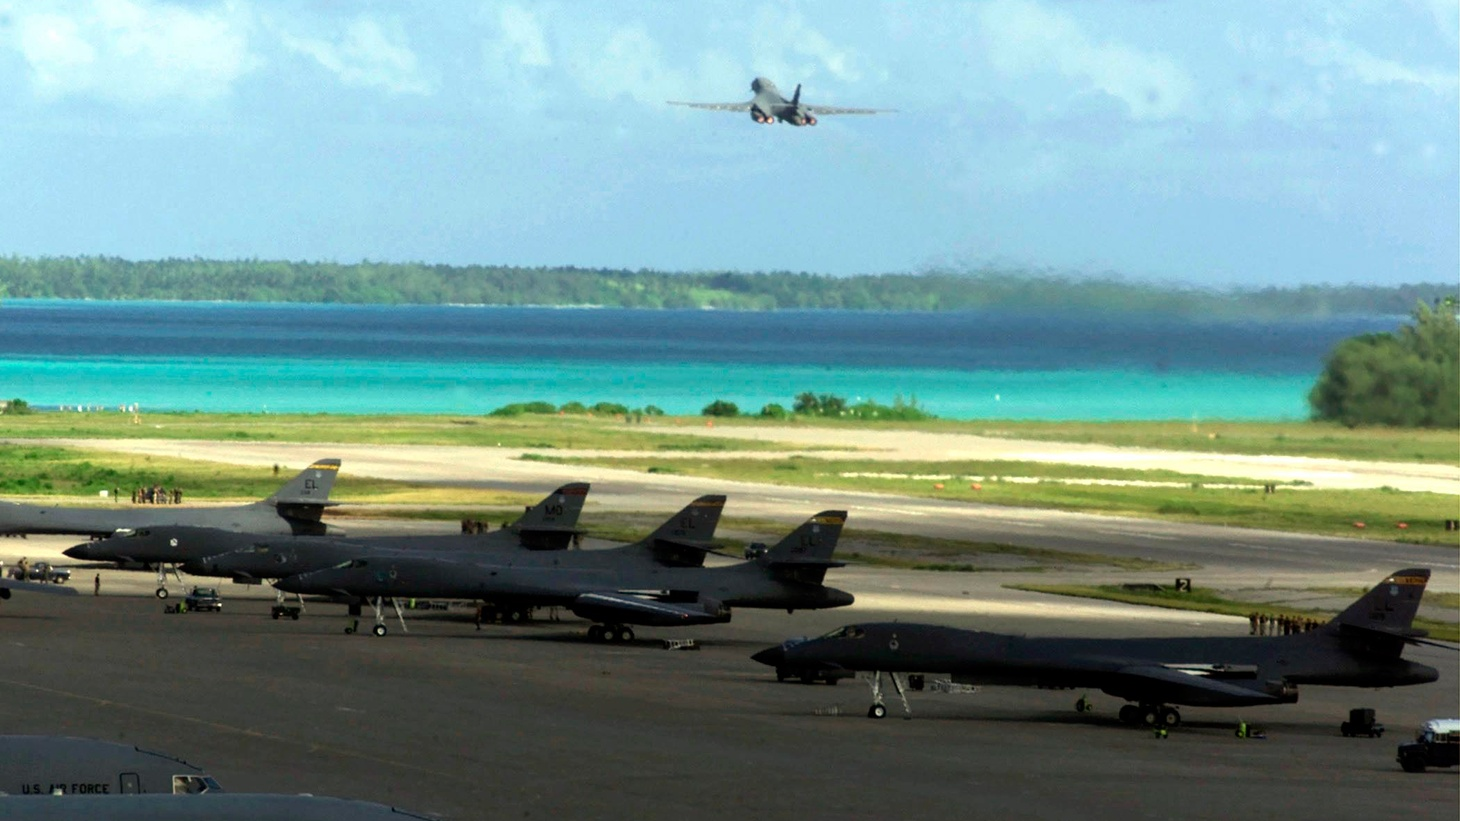 The US maintains some 800 military bases on foreign soil. Are they worth what they cost?